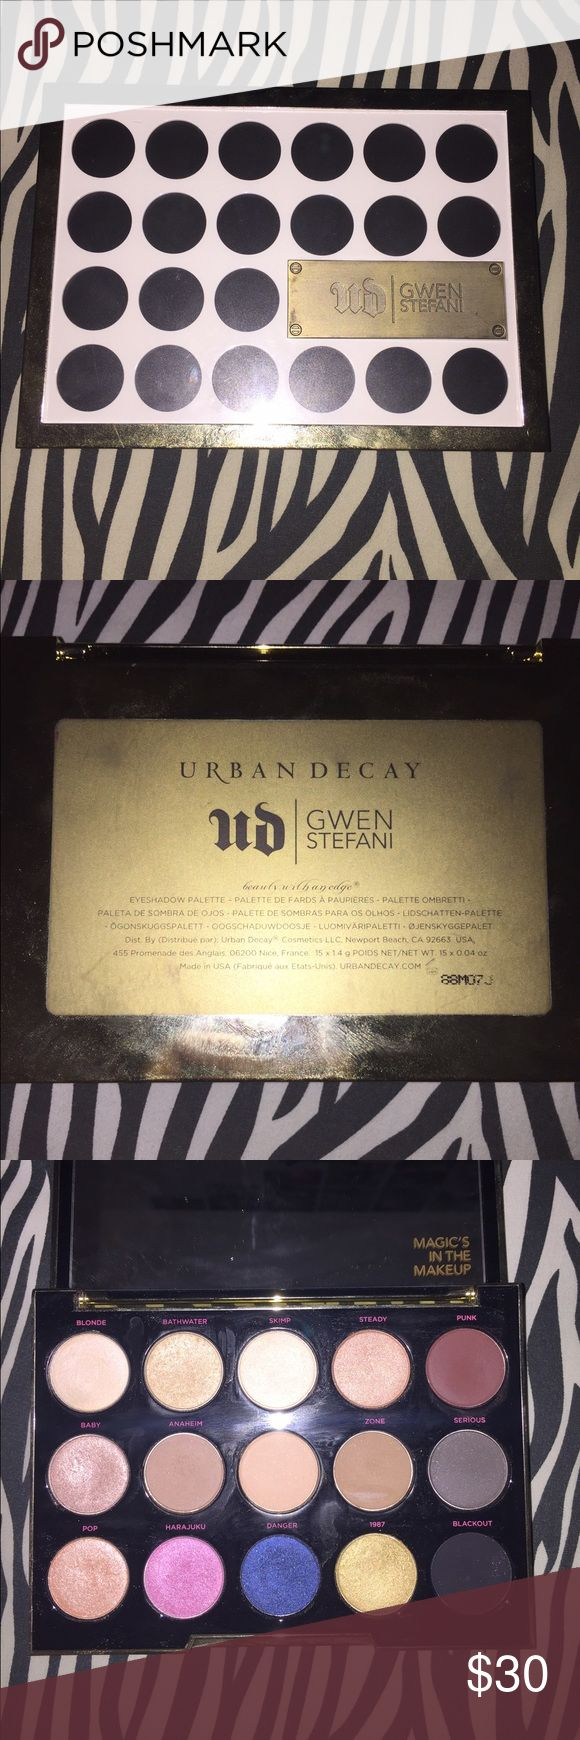 Authentic UD Gwen Stefan Palette ONLY SWATCHED! I do clean and disinfect all of my makeup! Urban Decay Makeup Eyeshadow